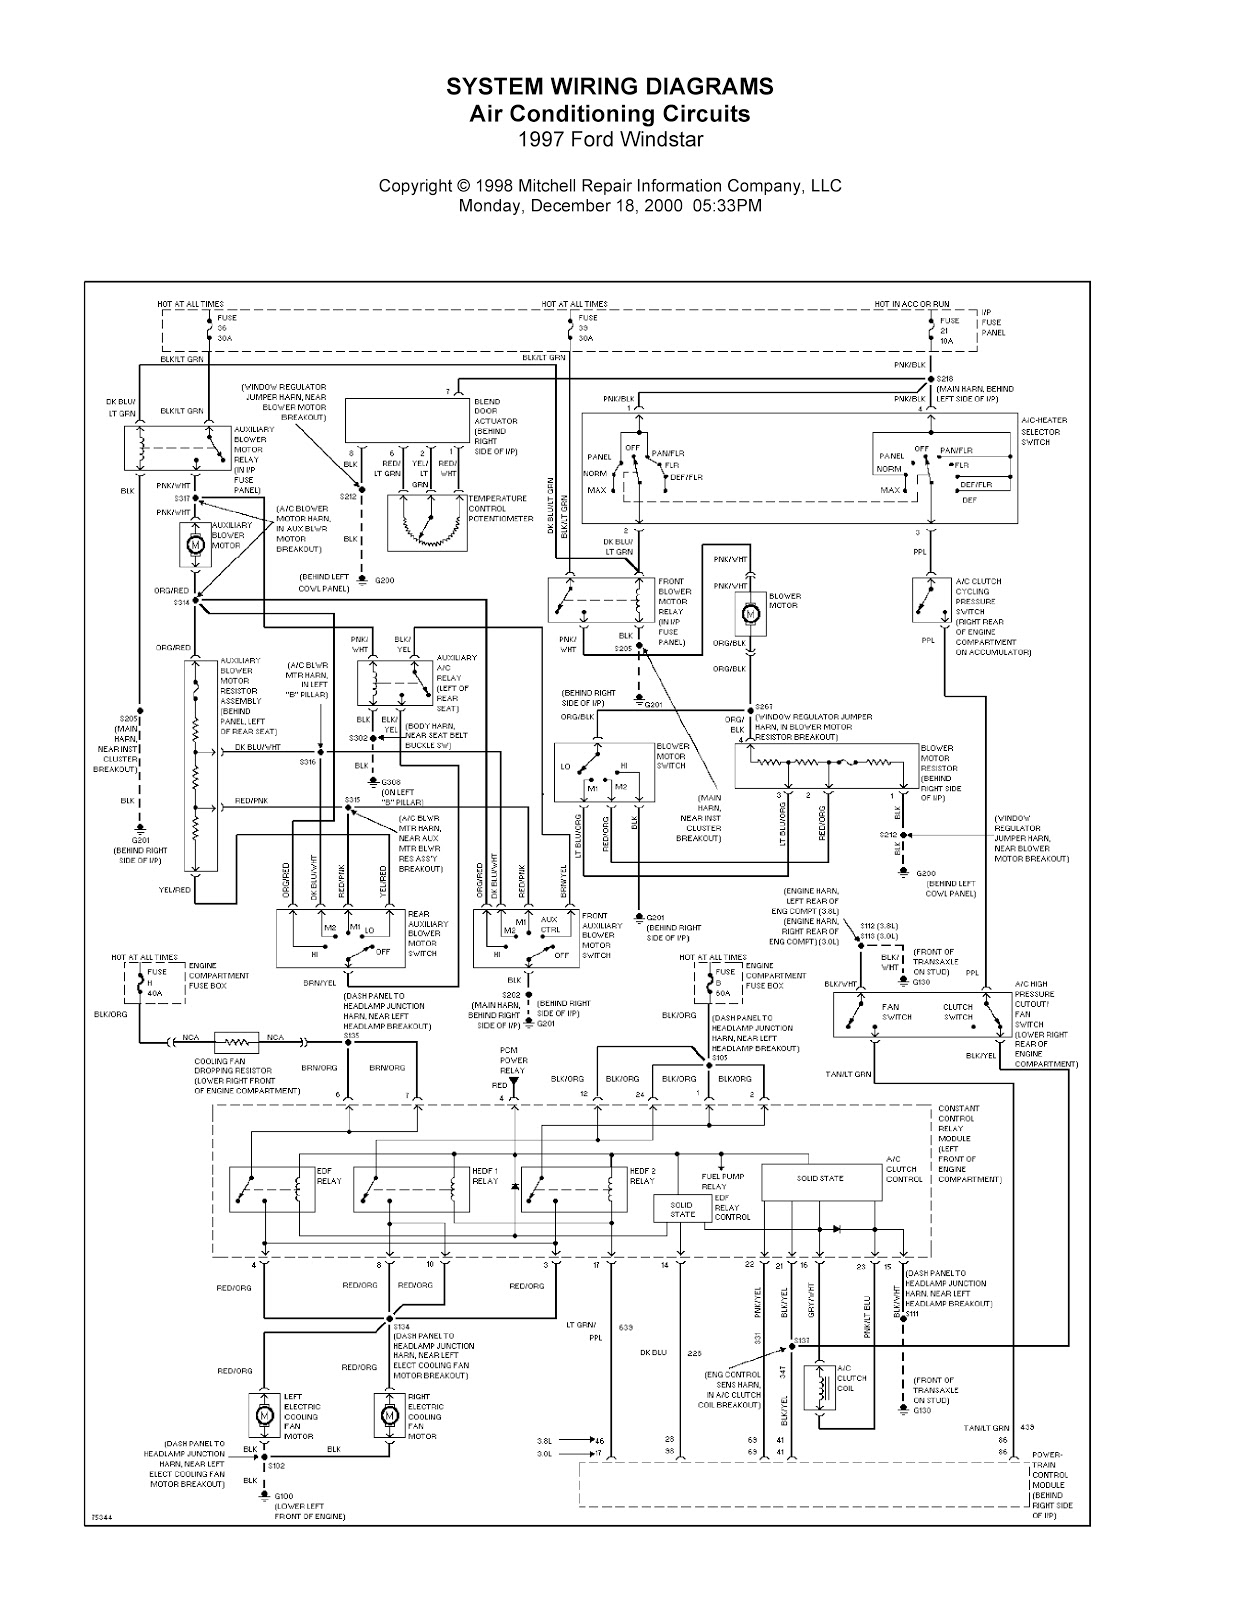 0001 1997 ford windstar complete system wiring diagrams wiring 1999 ford explorer rear wiper wiring diagram at alyssarenee.co